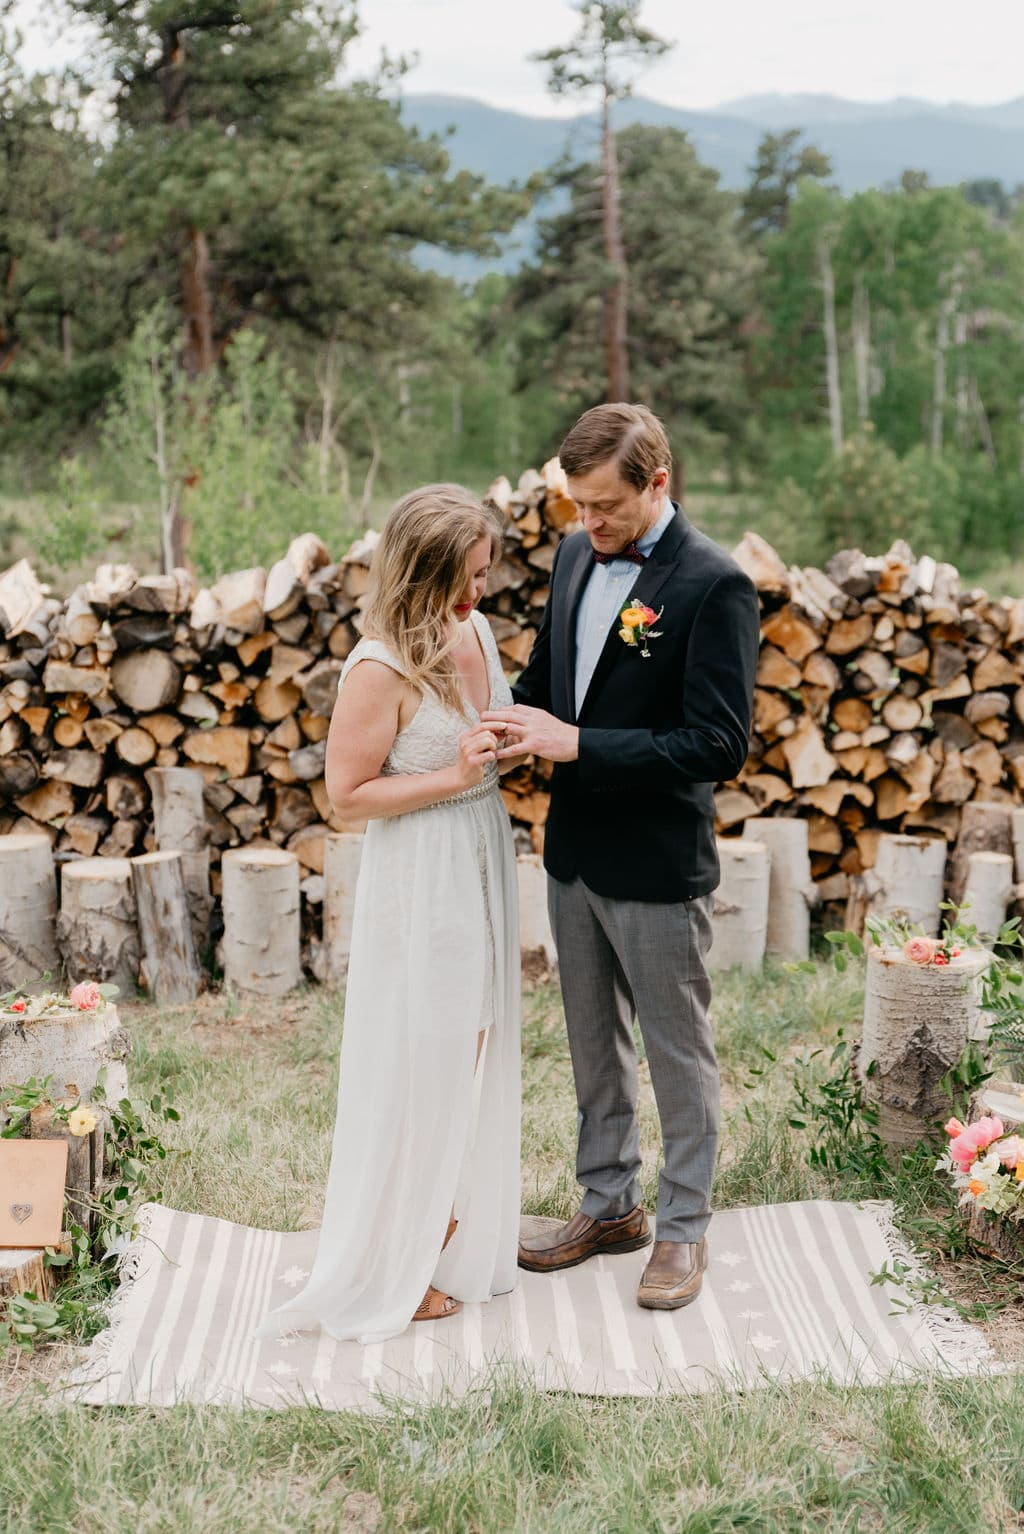 Colorado Elopement Location in Golden, Colorado exchanging rings